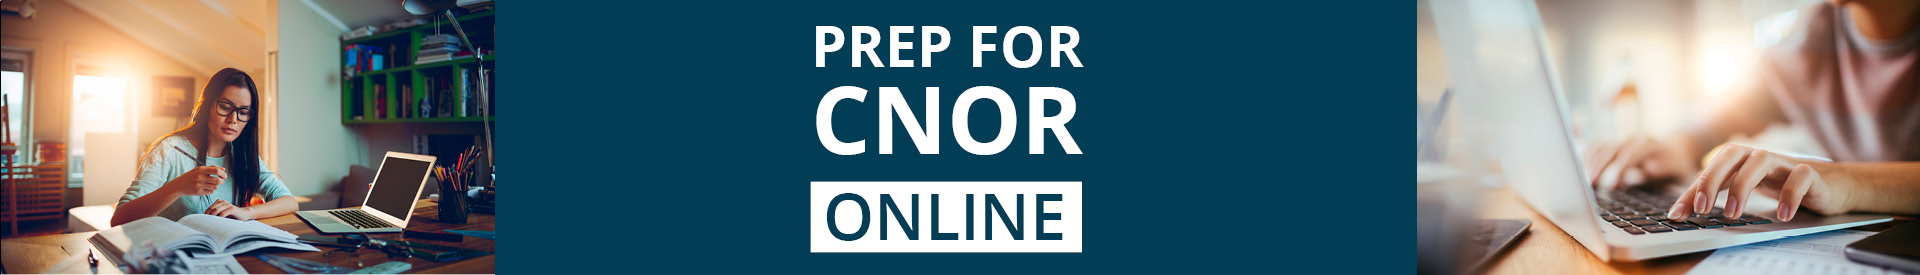 Prep for CNOR Online